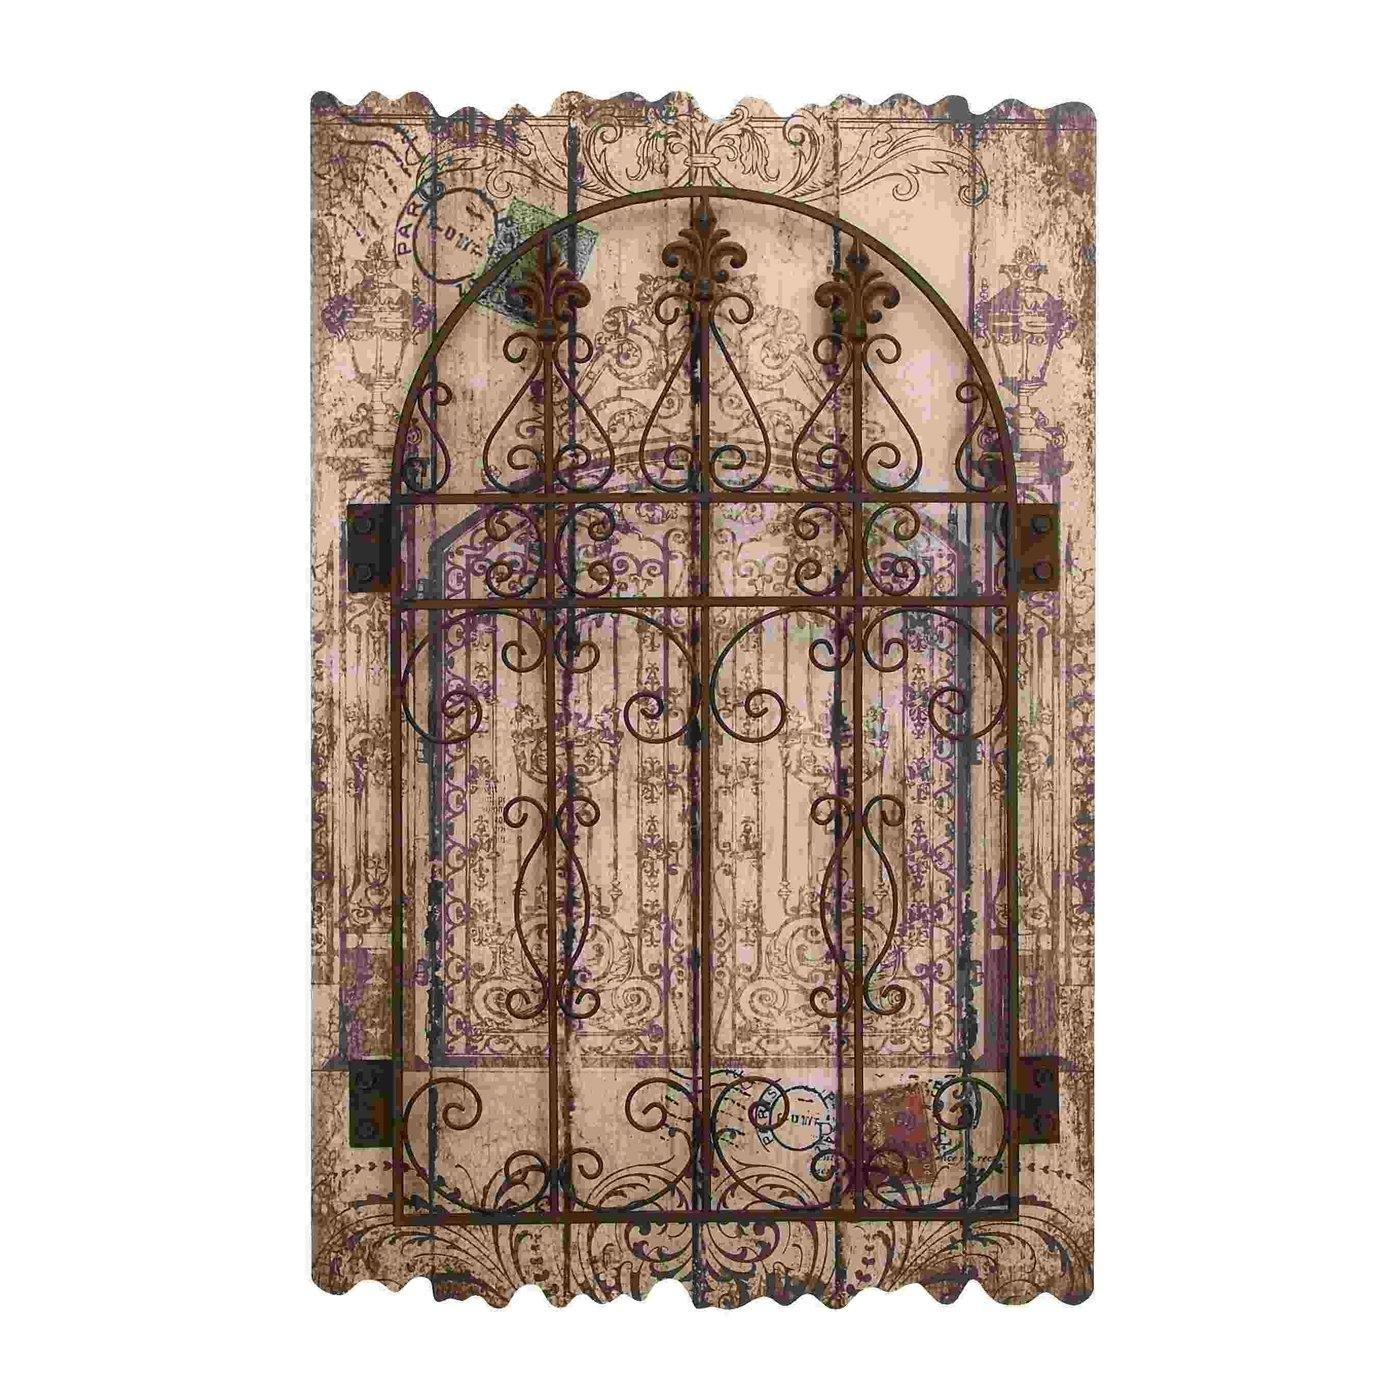 Home Design : Rustic Wood And Metal Wall Art Asian Large Rustic pertaining to Asian Metal Wall Art